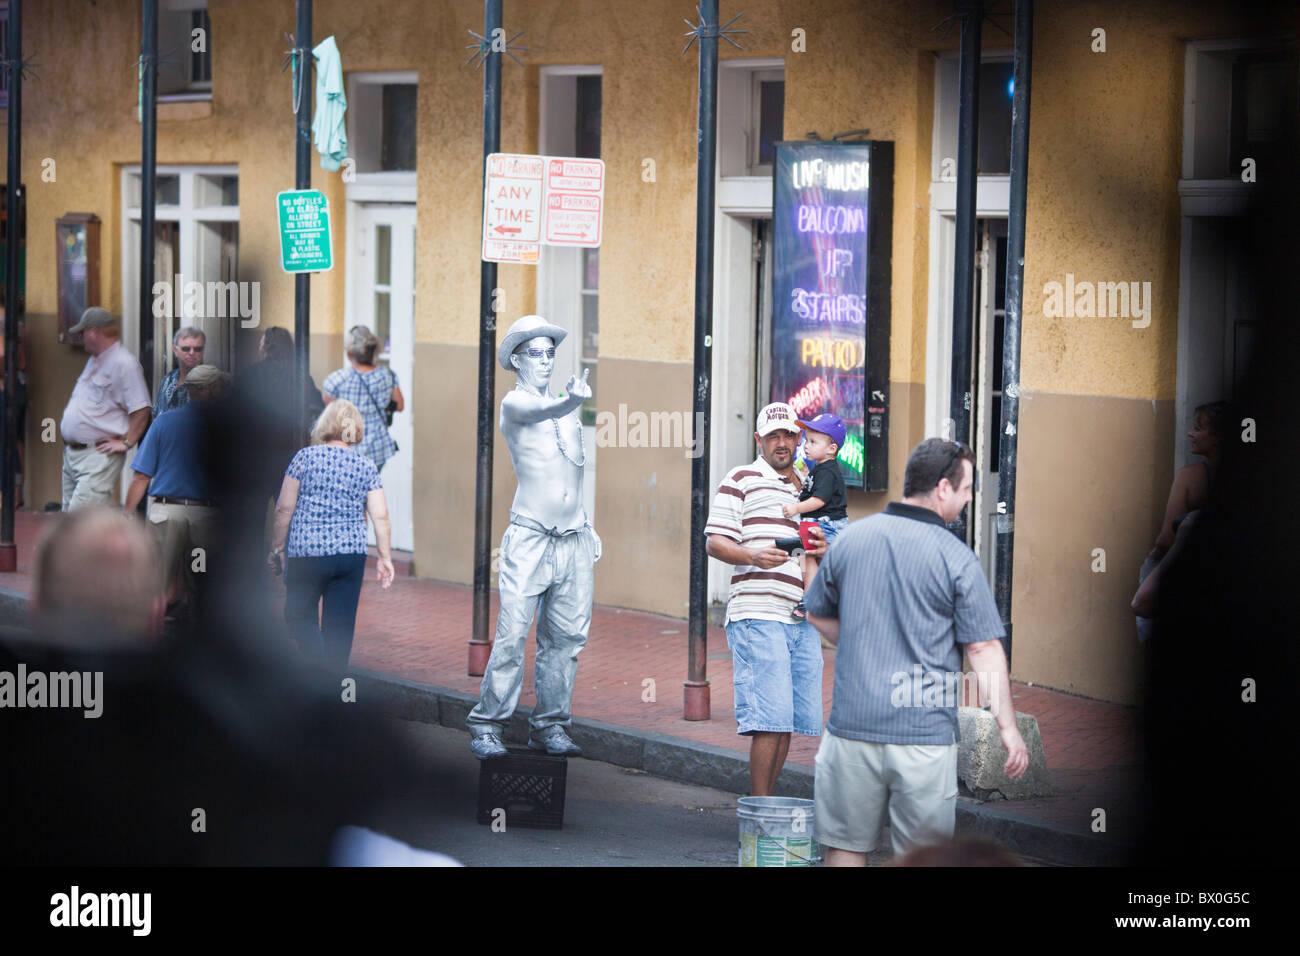 Mimes/performers painted in silver and gold pose for tips on Bourbon Street in New Orleans, Louisiana's French - Stock Image